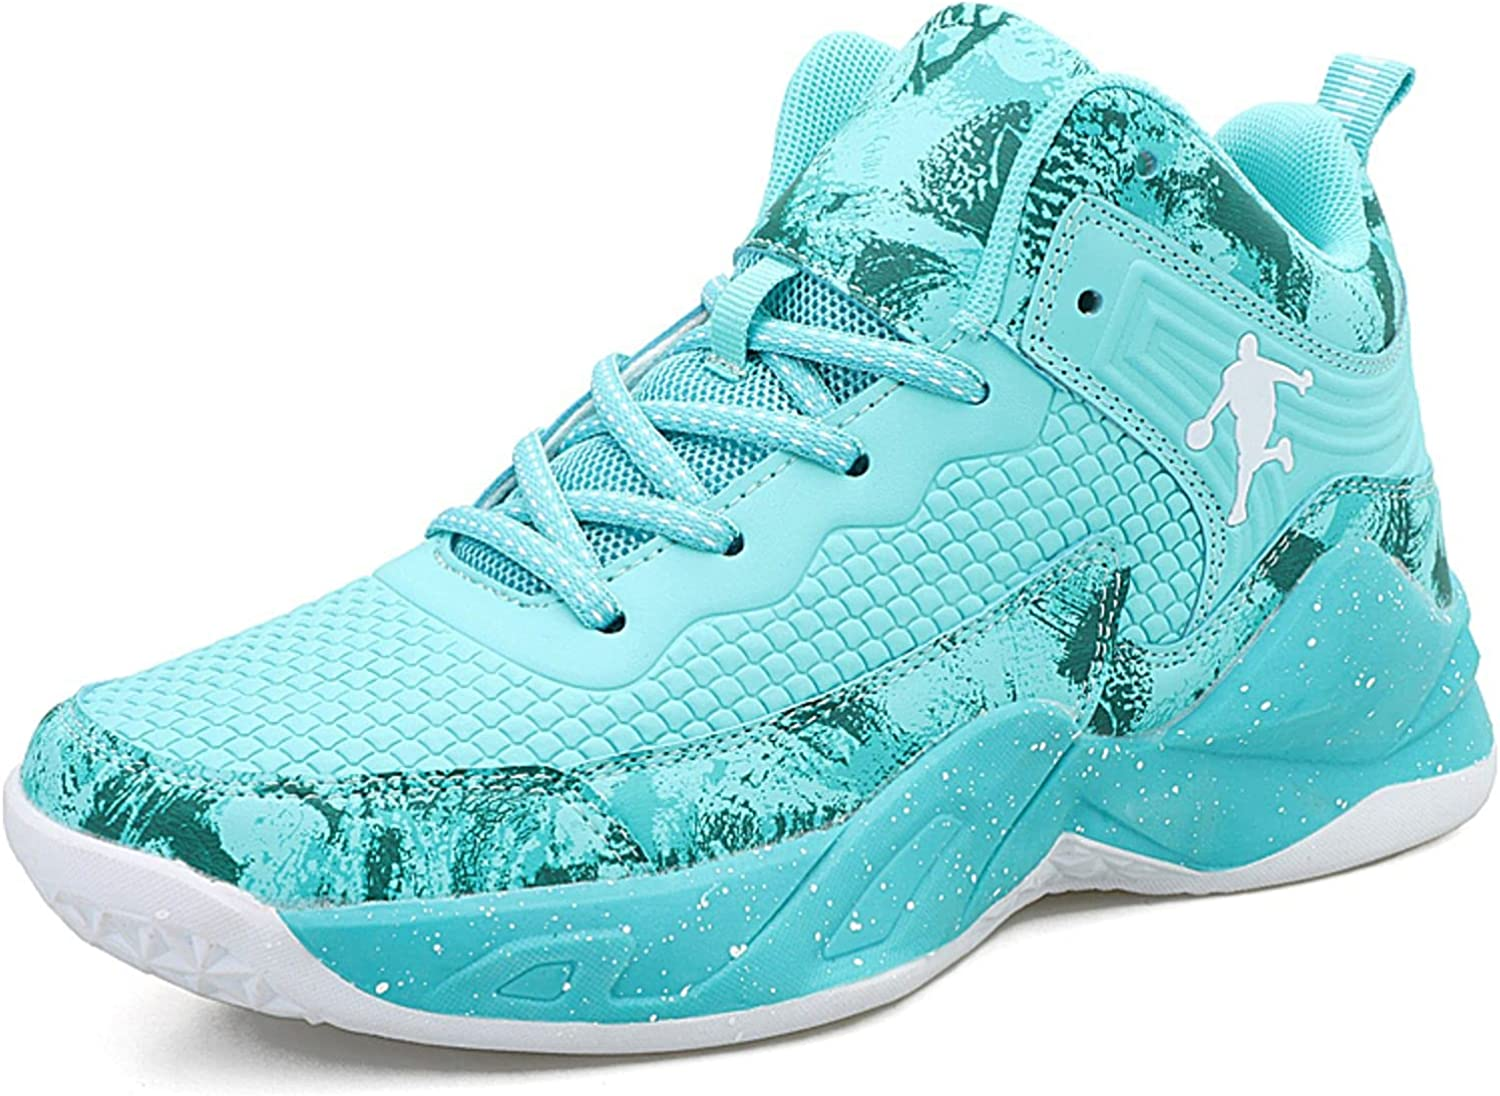 Ranking TOP9 Ucilxi Non Slip Basketball Cheap mail order shopping Shoes